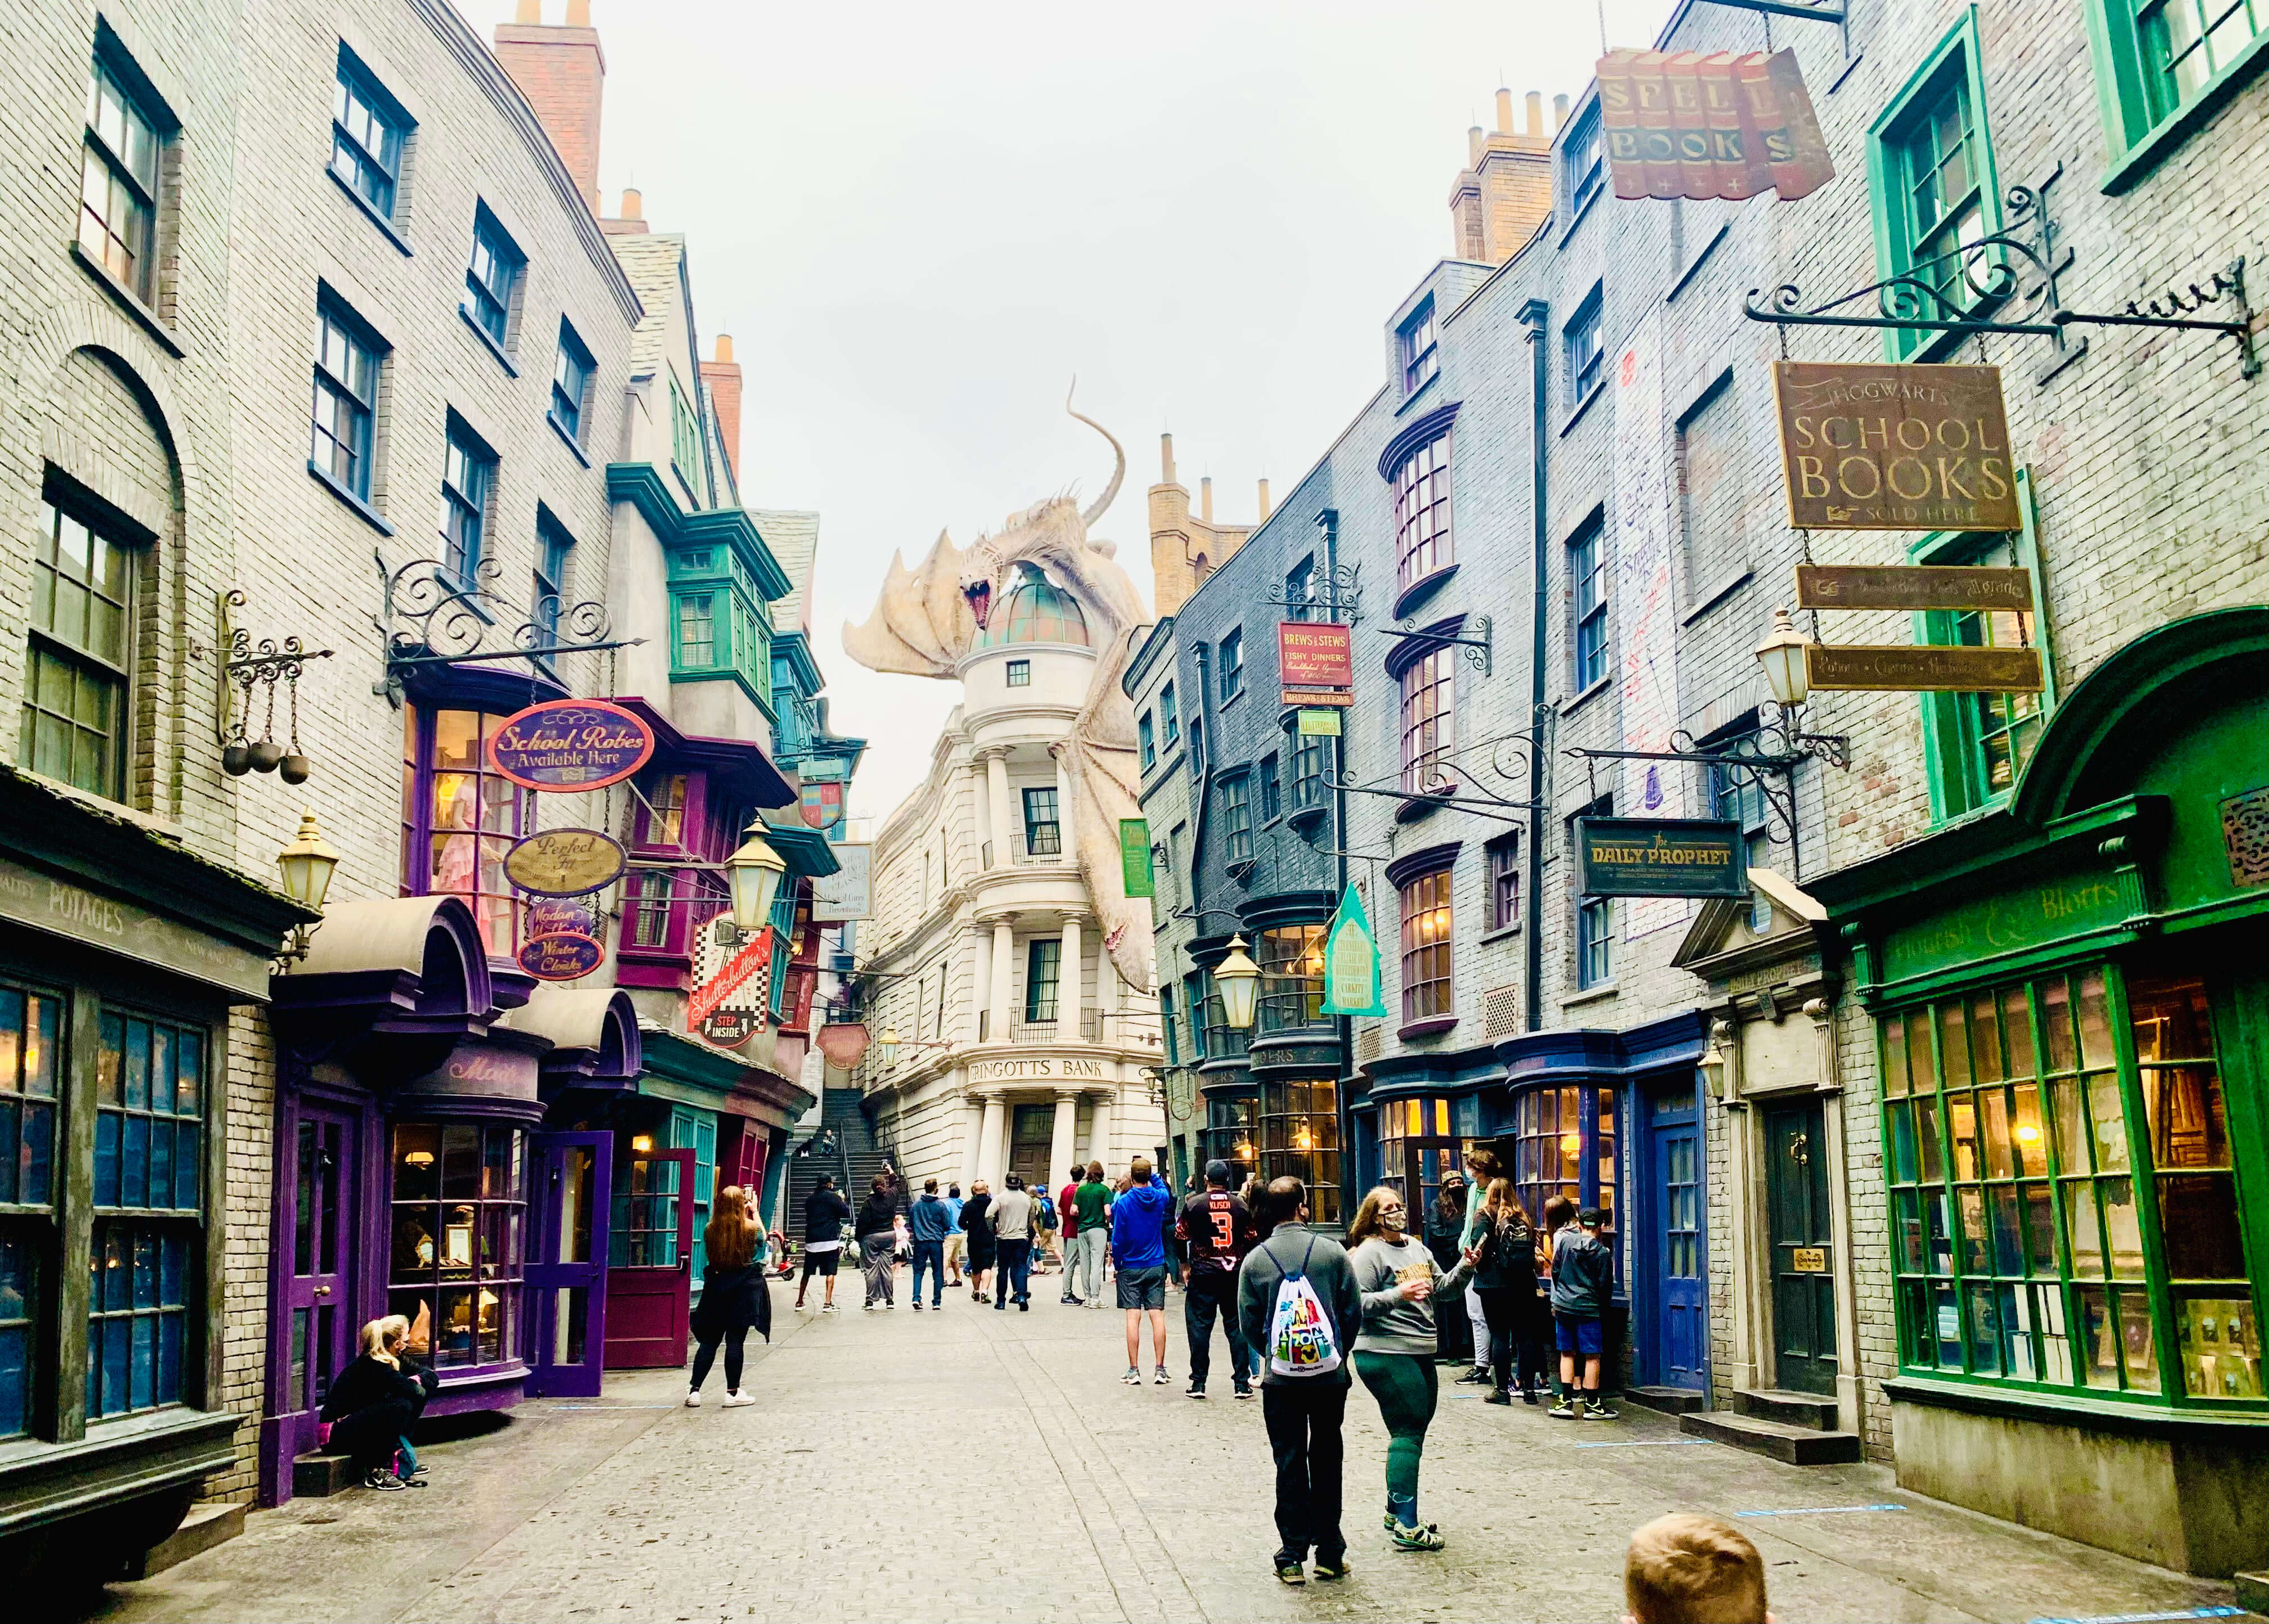 Universal Studios Diagon Alley and our 1-day Universal Studios itinerary